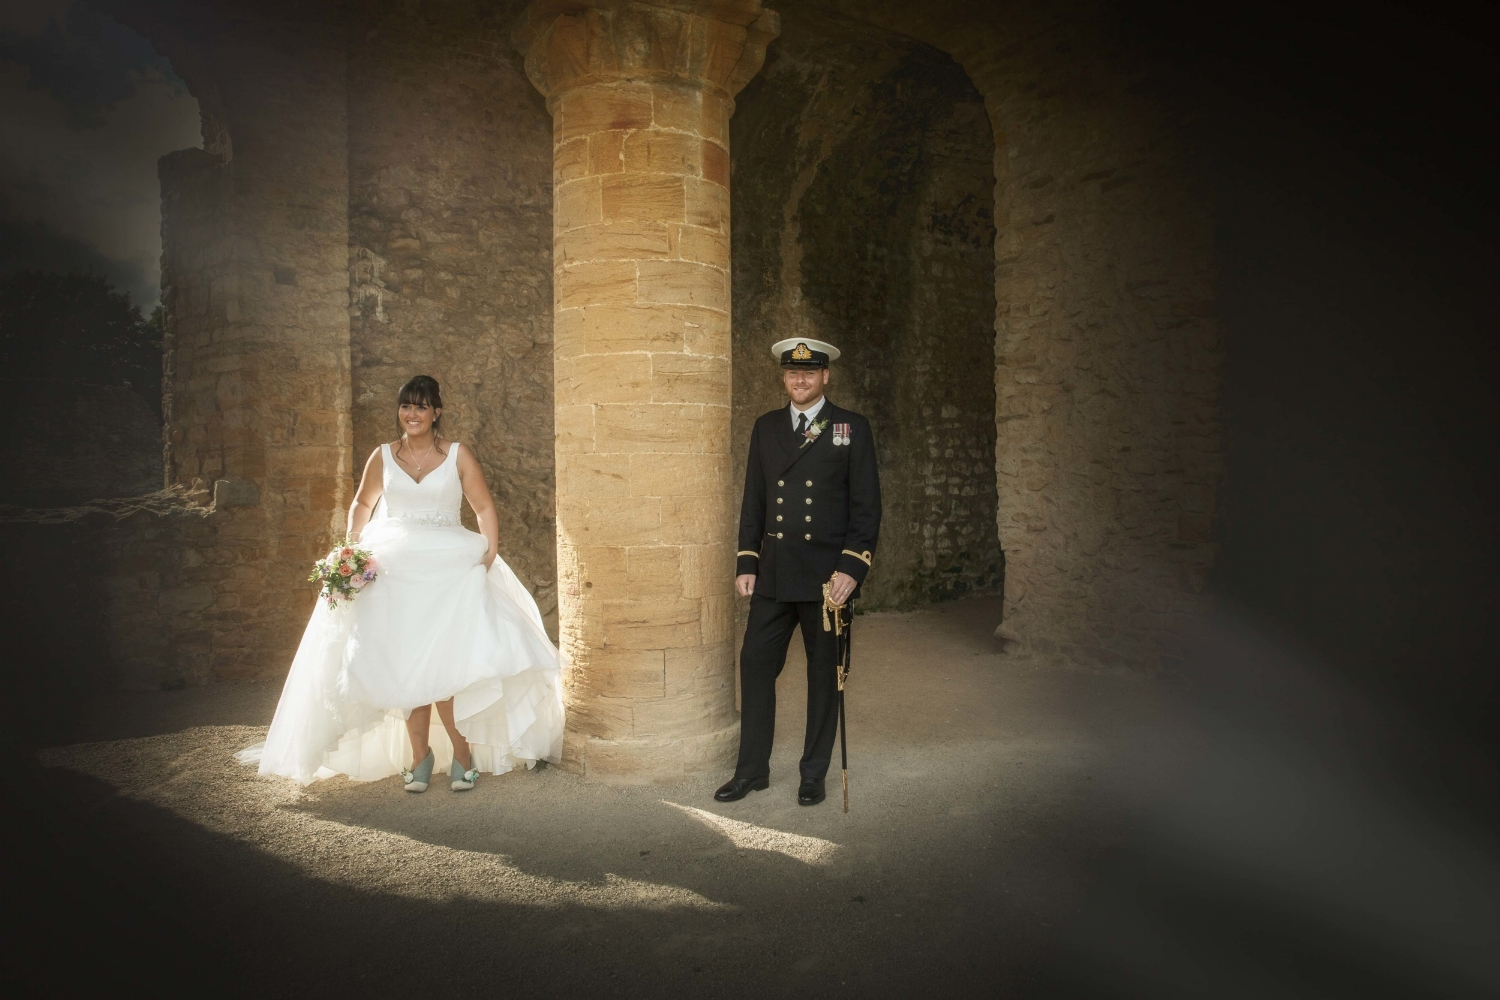 Wayne Hudson Photography, Lucria Creative, Cornwall and Devon wedding photographer based in Launceston, Danni and Karl